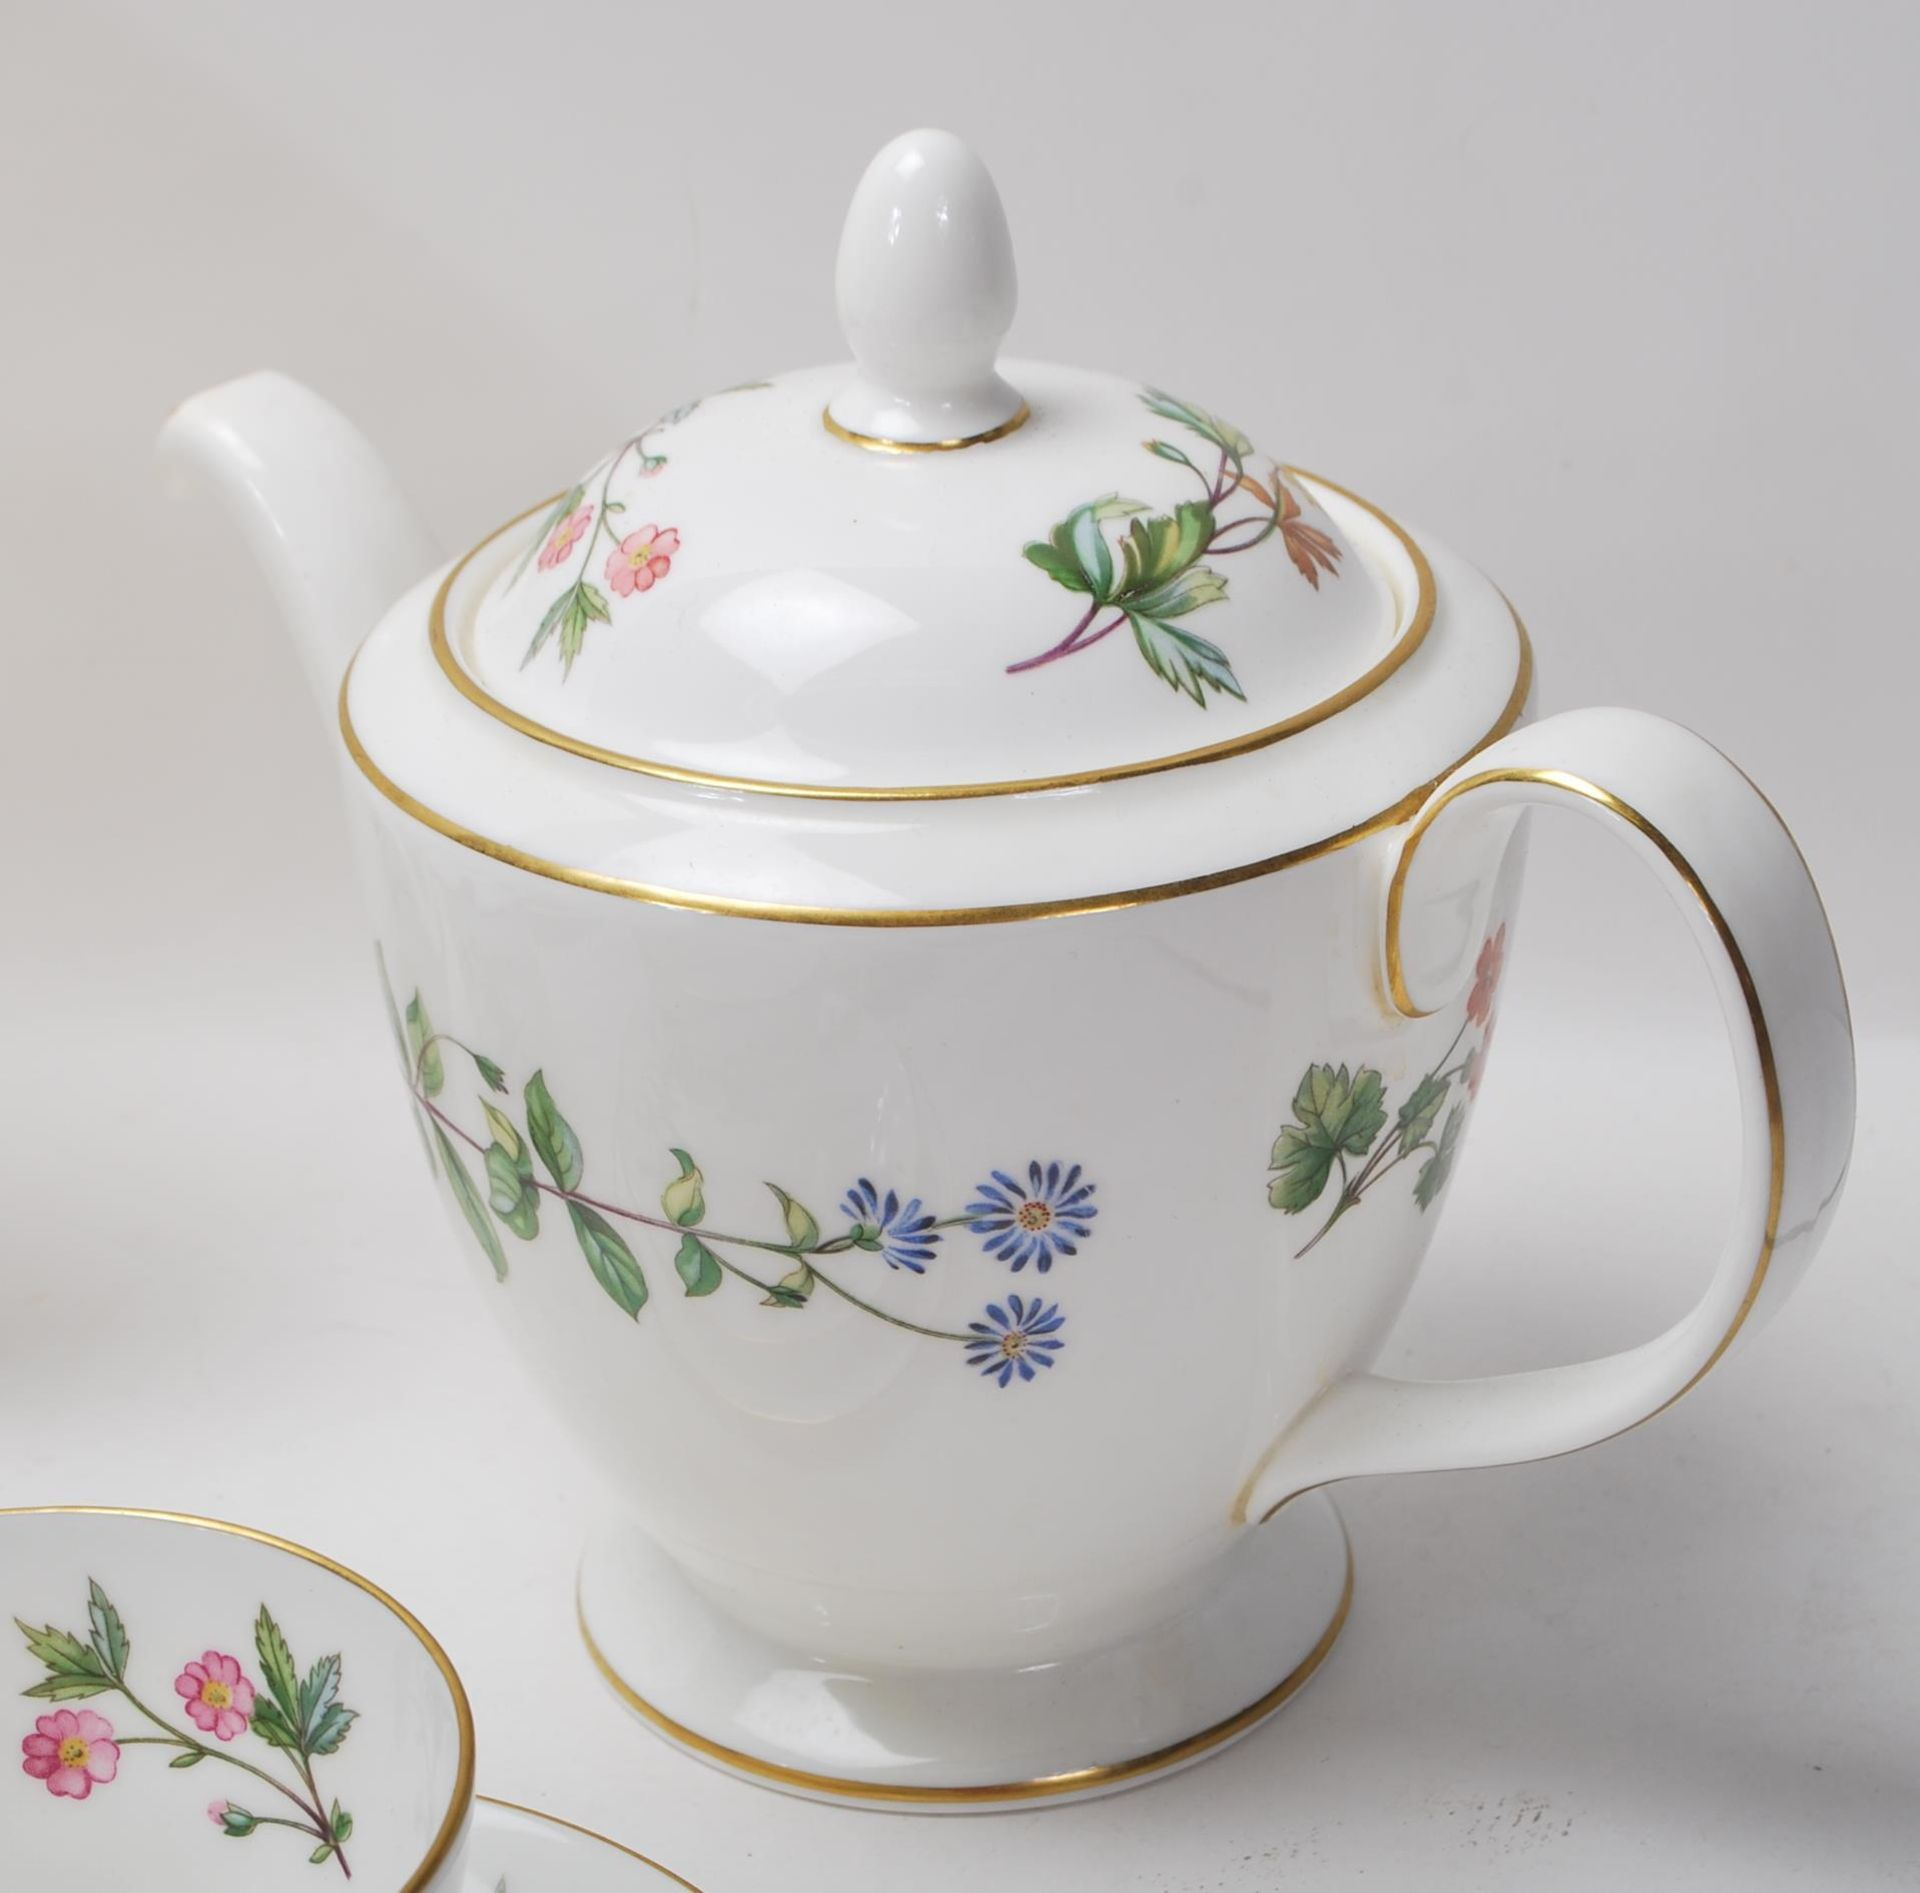 MINTON MEADOW PATTERN BONE CHINA TEA SERVICE - Image 11 of 12